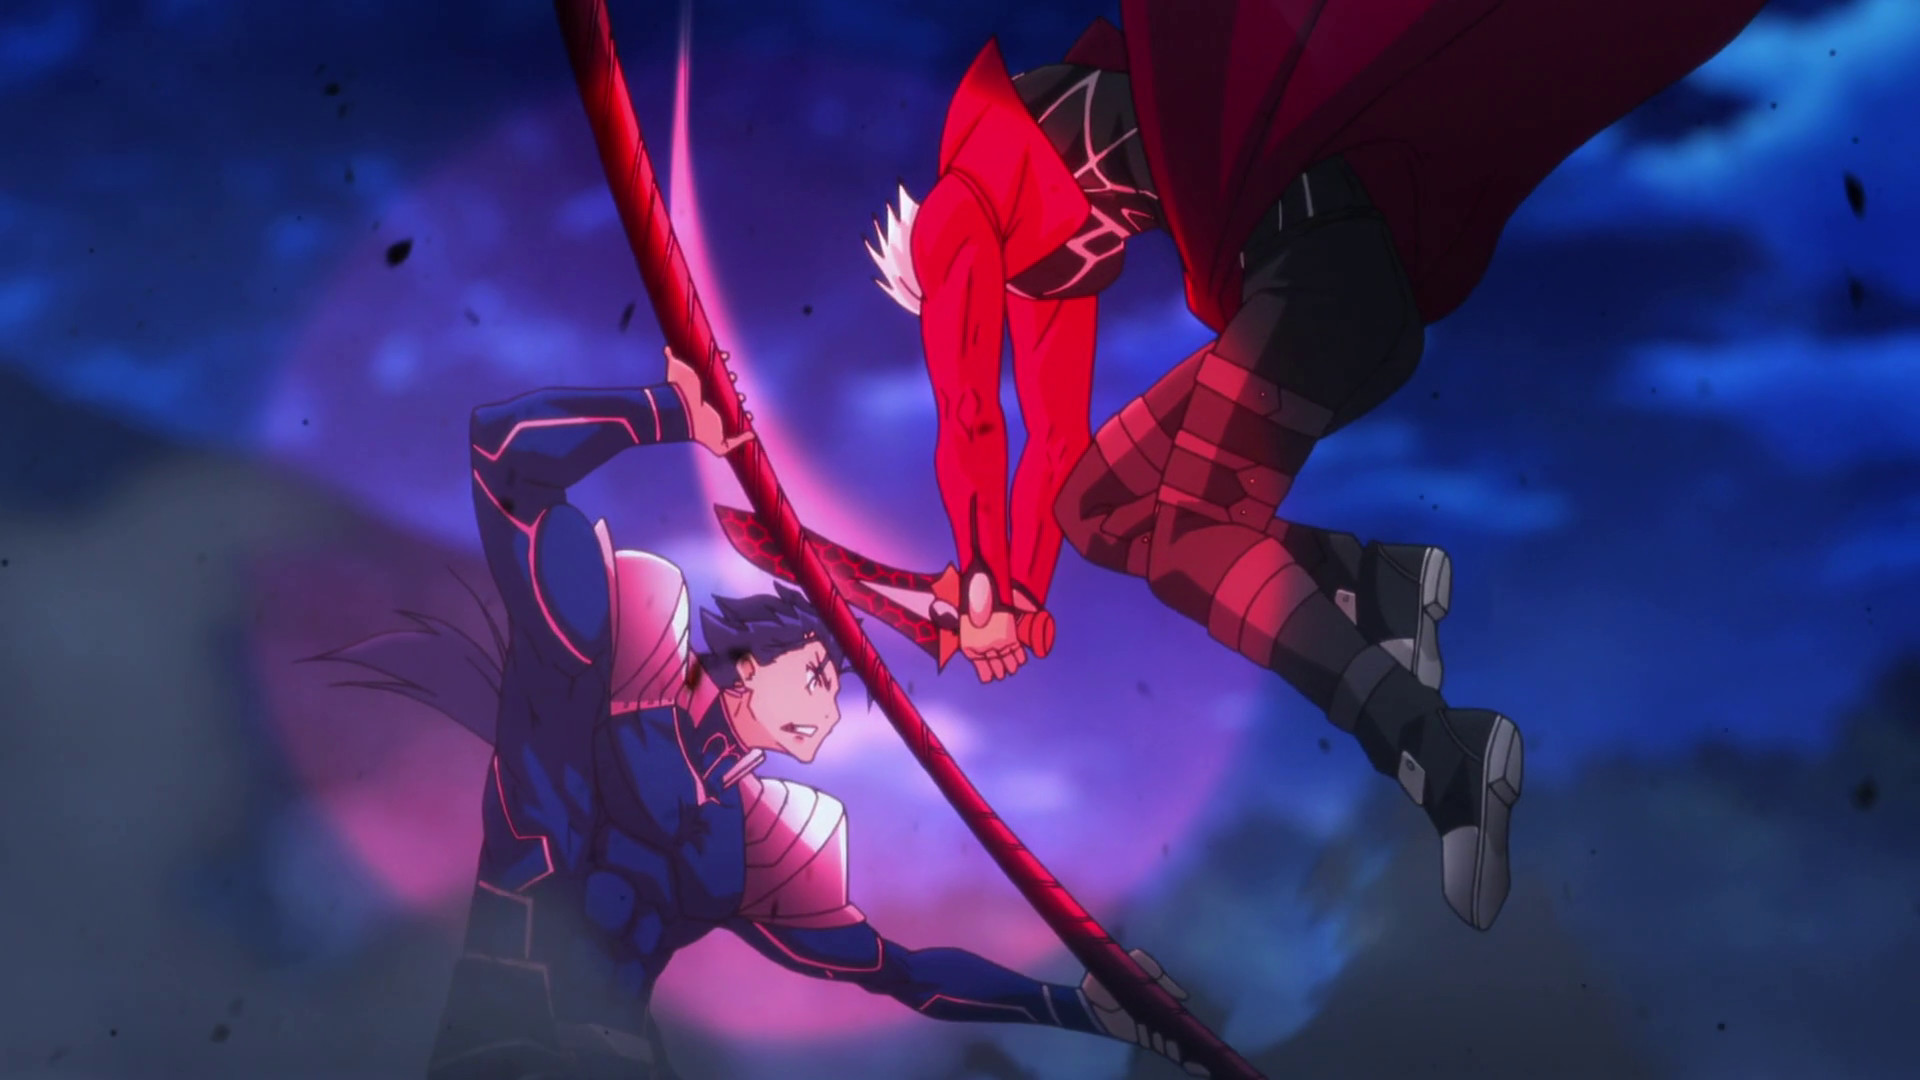 1920x1080 Anime - Fate/Stay Night: Unlimited Blade Works Lancer (Fate/Stay Night